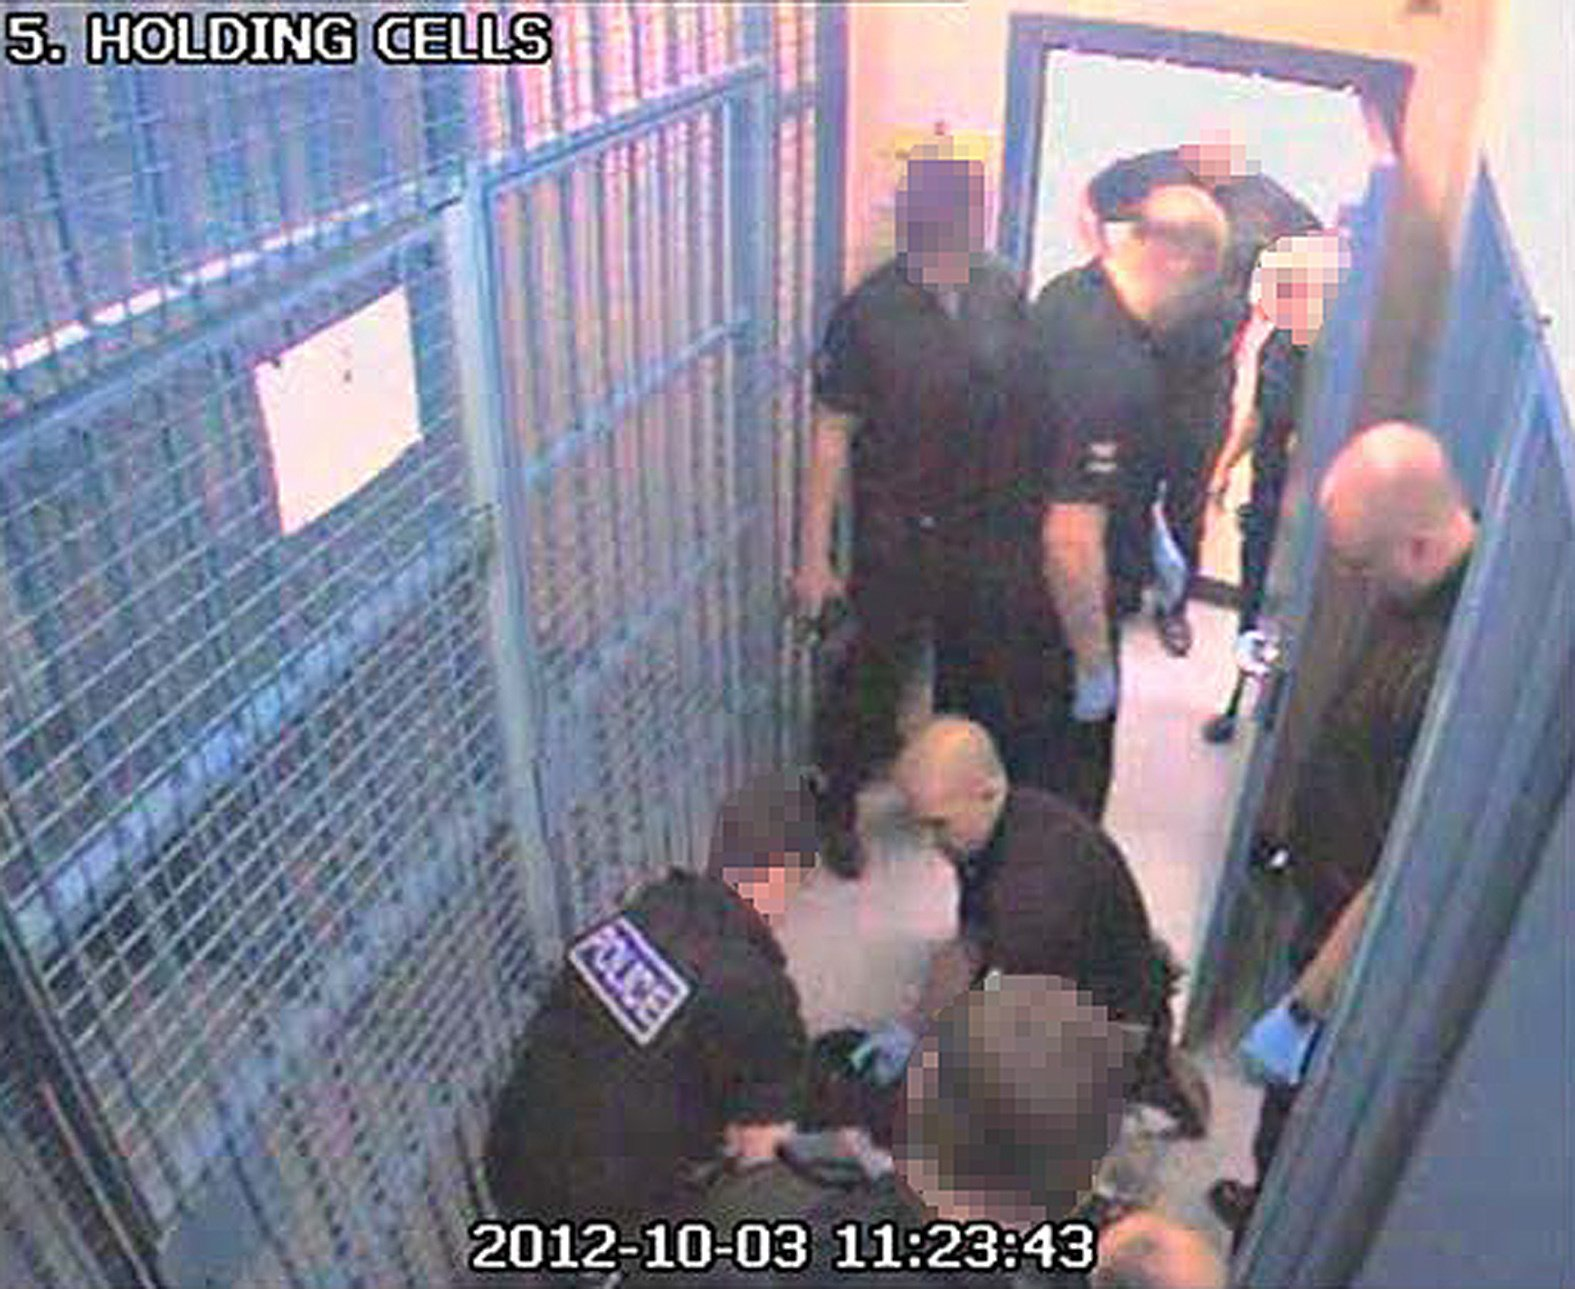 EDITORS NOTE IMAGE PIXELATED AT SOURCE BEST QUALITY AVAILABLE CCTV still issued by the Independent Police Complaints Commission of Simon Tansley, (right kneeling), and Michael Marsden (right) with Thomas Orchard on the floor of the holding cells at Heavitree Road police station. Custody sergeant Kingshott and detention officers Tansley and Marsden of Devon and Cornwall Police have been found not guilty at Bristol Crown Court of the manslaughter of Orchard, who died after being restrained in Exeter in 2012. PRESS ASSOCIATION Photo. Issue date: Wednesday February 15, 2017. See PA story COURTS Restrain. Photo credit should read: IPCC/PA Wire NOTE TO EDITORS: This handout photo may only be used in for editorial reporting purposes for the contemporaneous illustration of events, things or the people in the image or facts mentioned in the caption. Reuse of the picture may require further permission from the copyright holder.